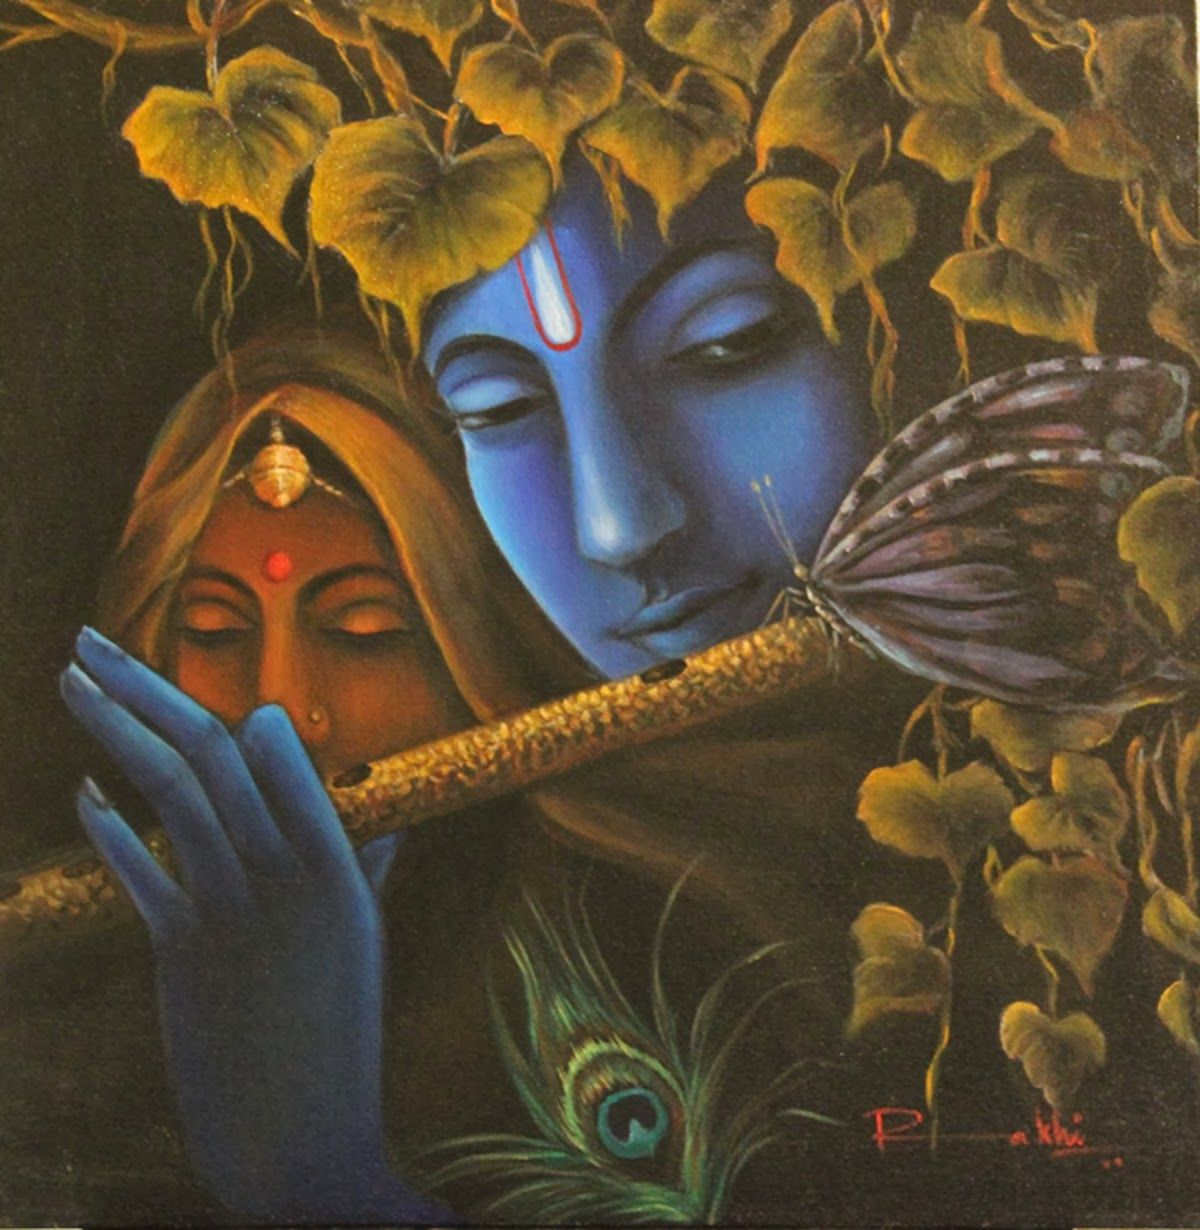 Pin by HD Wallpapers on Hd Wallpapers | Radha krishna ...